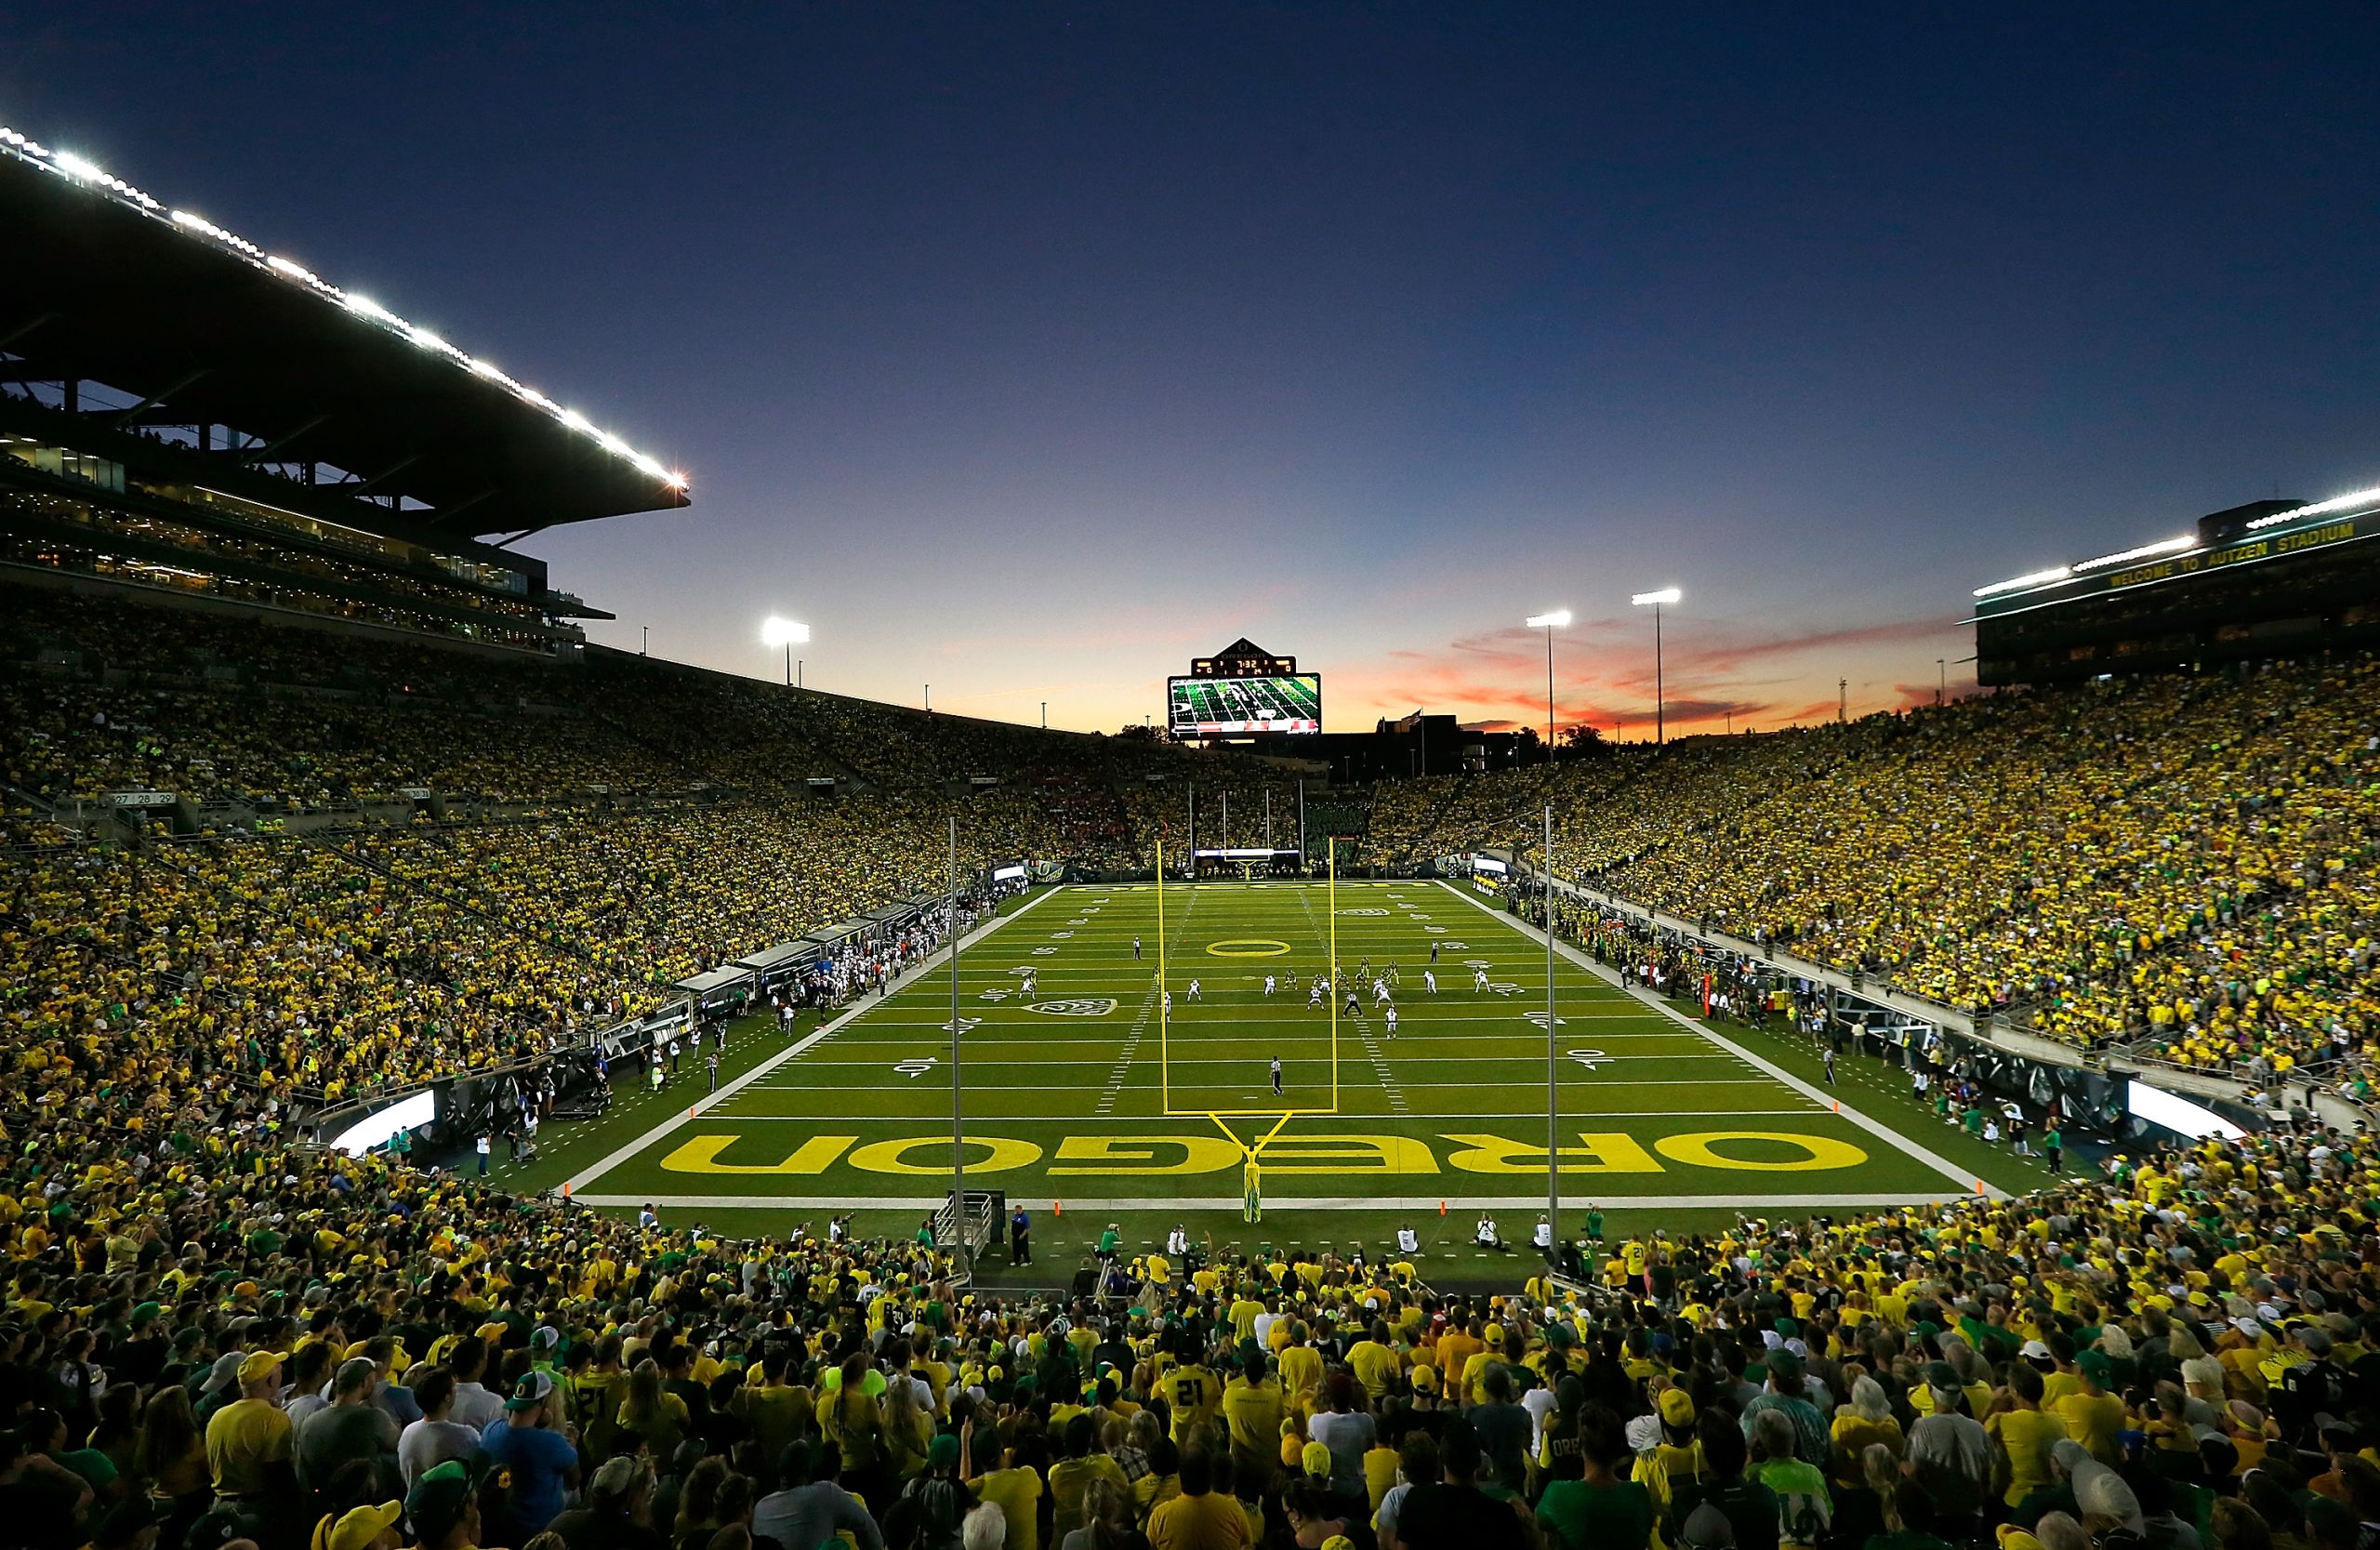 Autzen Stadium Home of the University of Oregon Duck Football